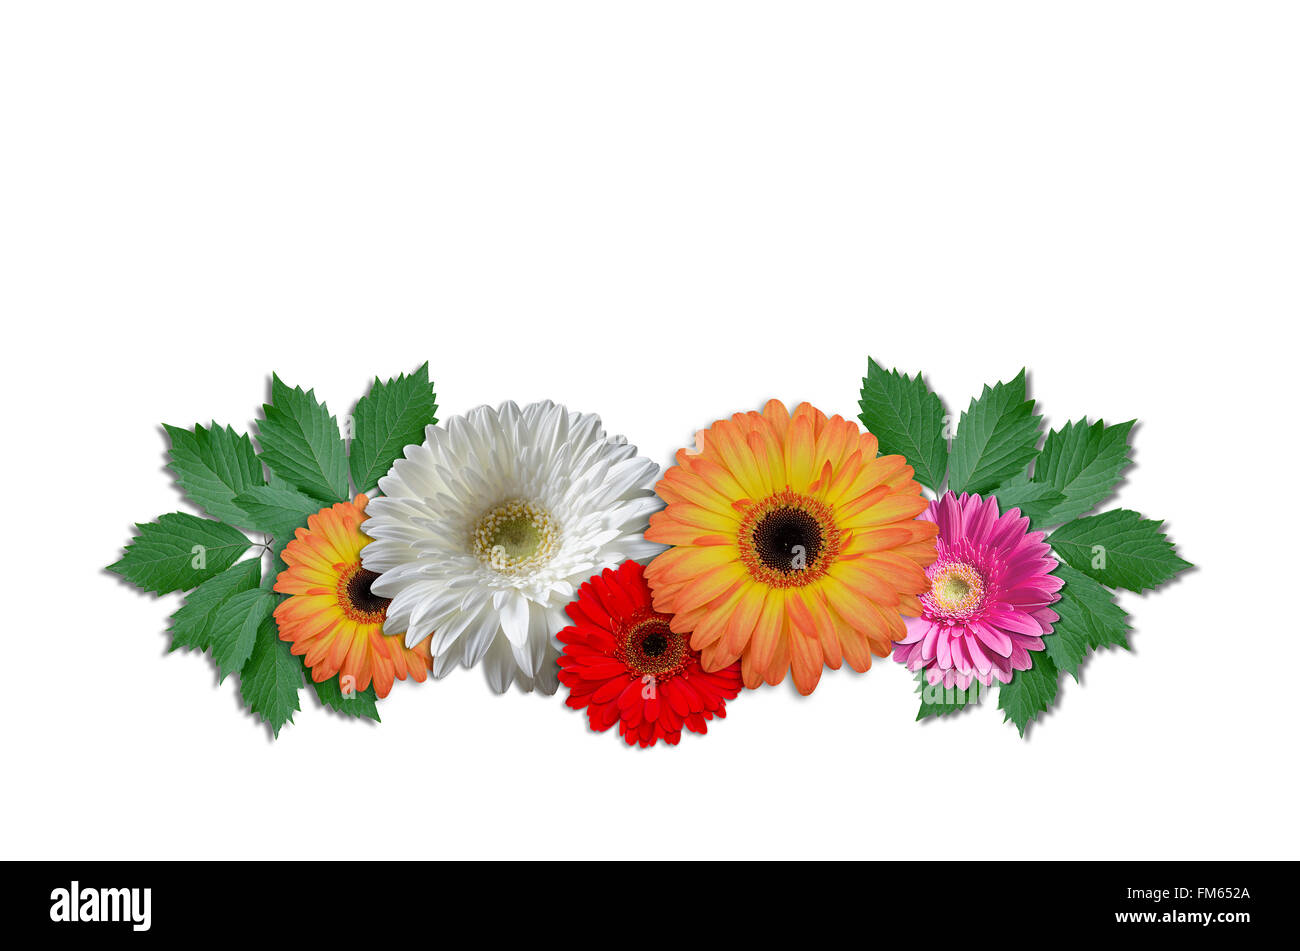 Group flowers daisies with green ivy leaves stock photo 98480658 group flowers daisies with green ivy leaves izmirmasajfo